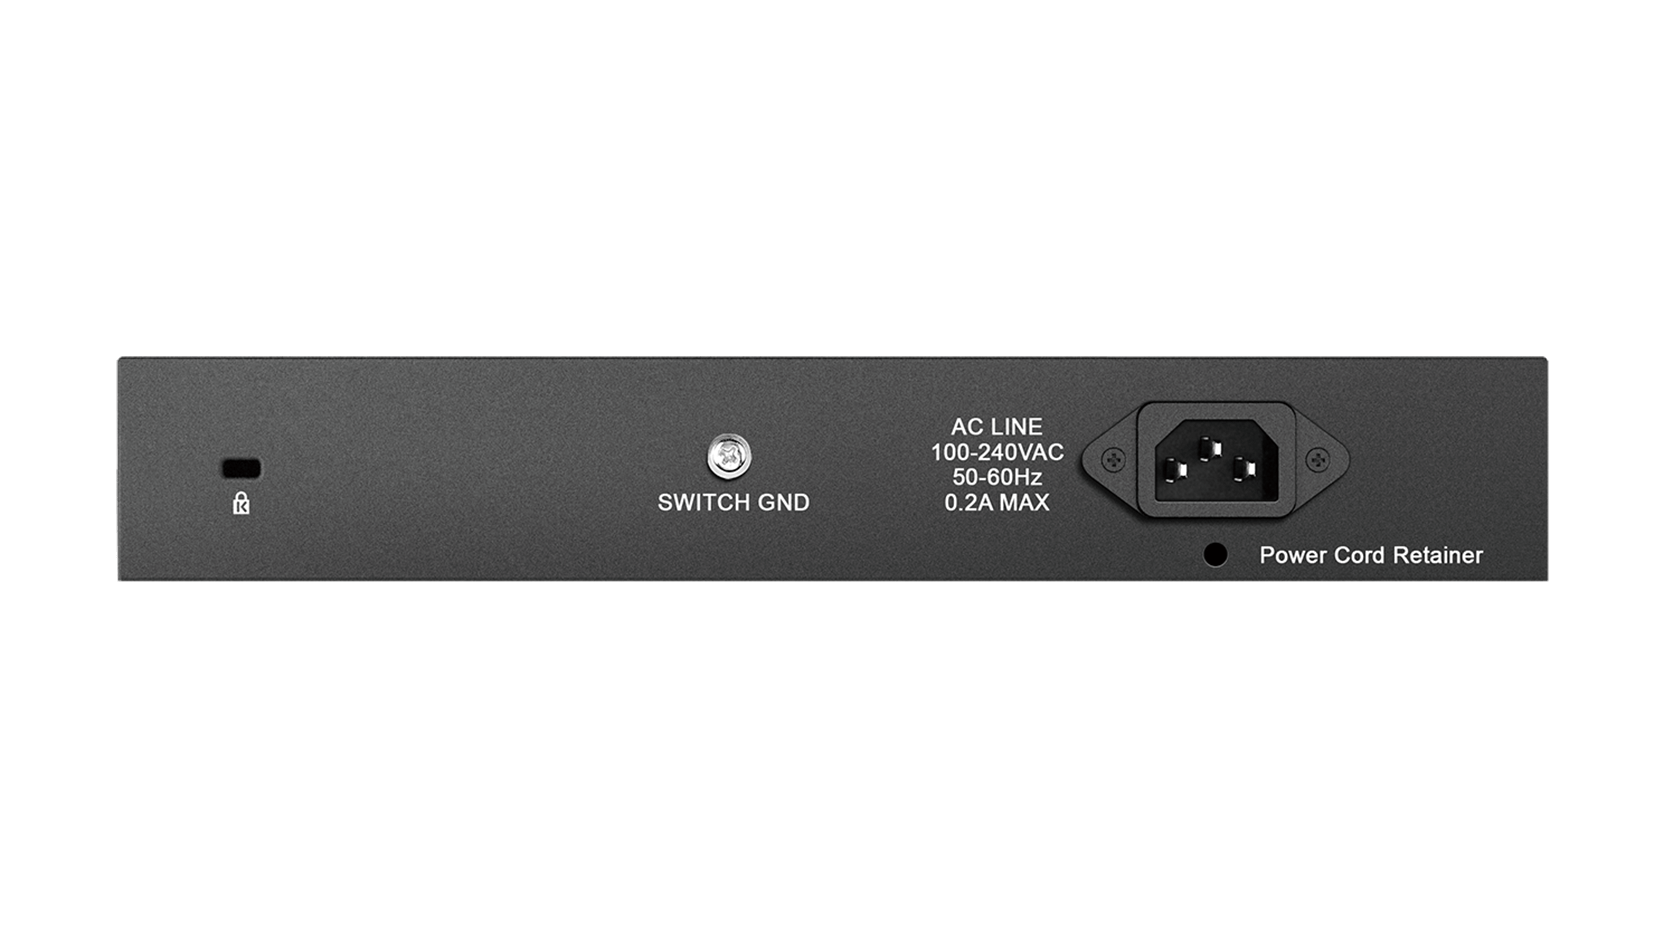 DGS-1016D D-Link Fast Ethernet Switch 16 Port Gigabit Unmanaged Fanless Network Hub Desktop or Rack Mountable